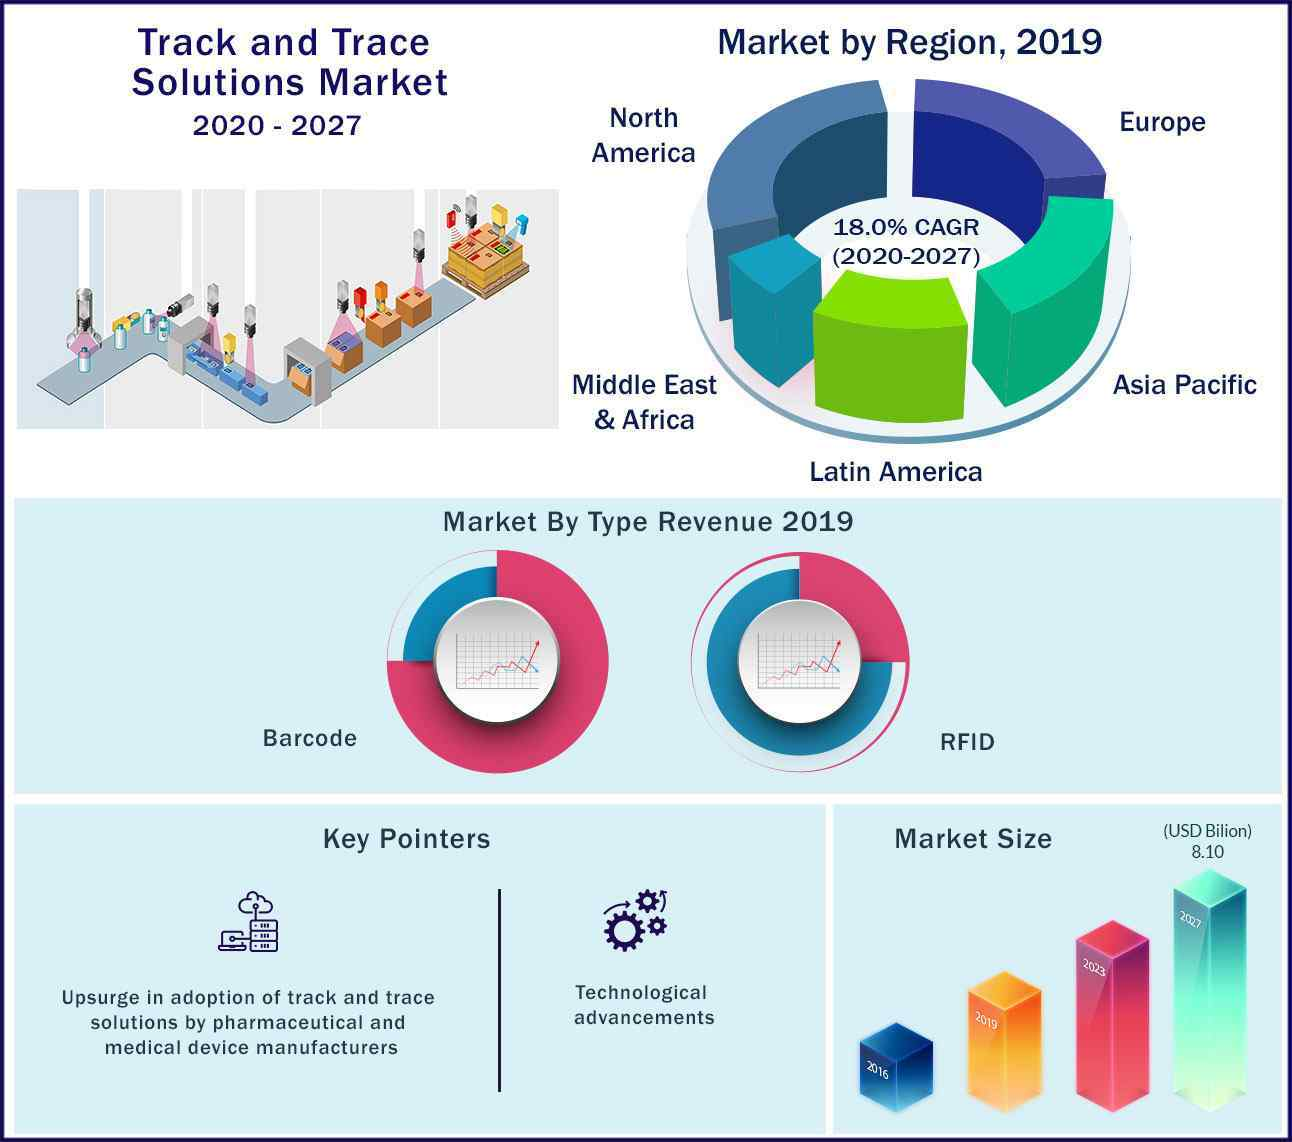 Global Track and Trace Solutions Market 2020 to 2027